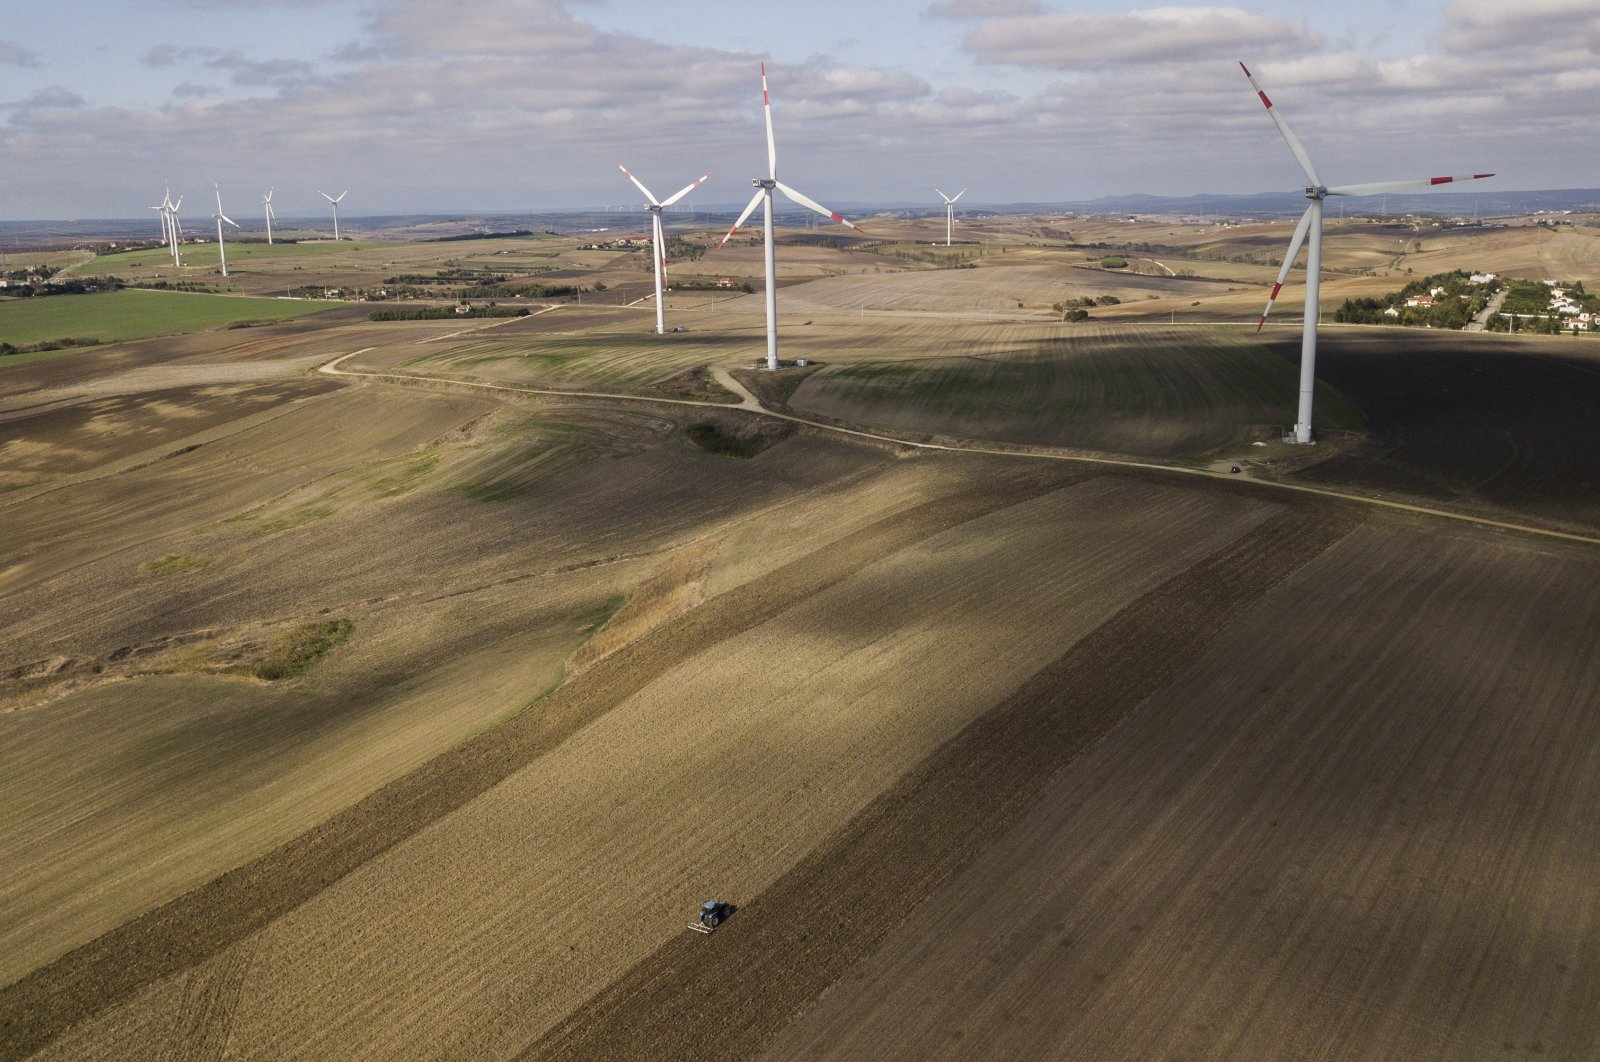 Wind turbines are seen in the countryside of Istanbul, Turkey, Oct. 22, 2020. (EPA Photo)